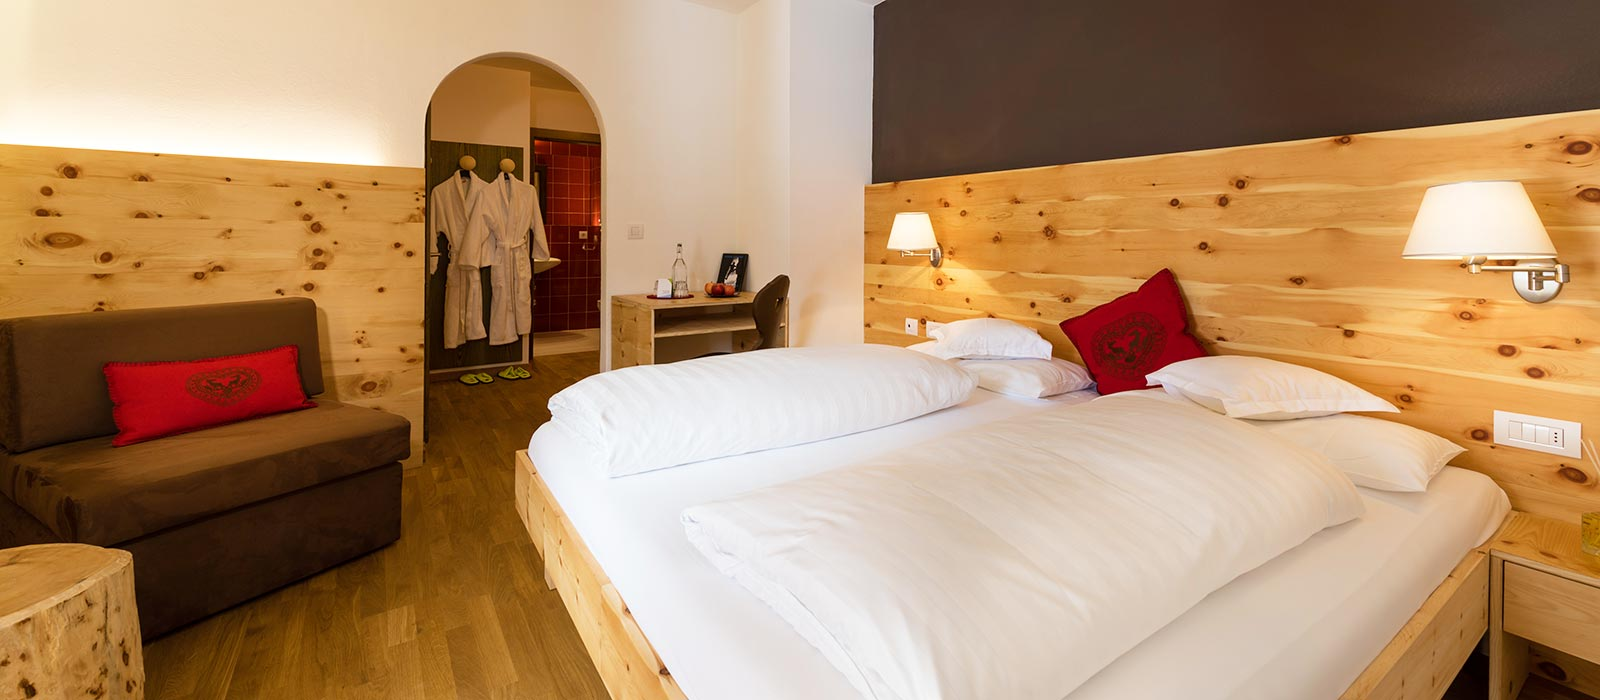 Our Rooms & Prices in Sesto